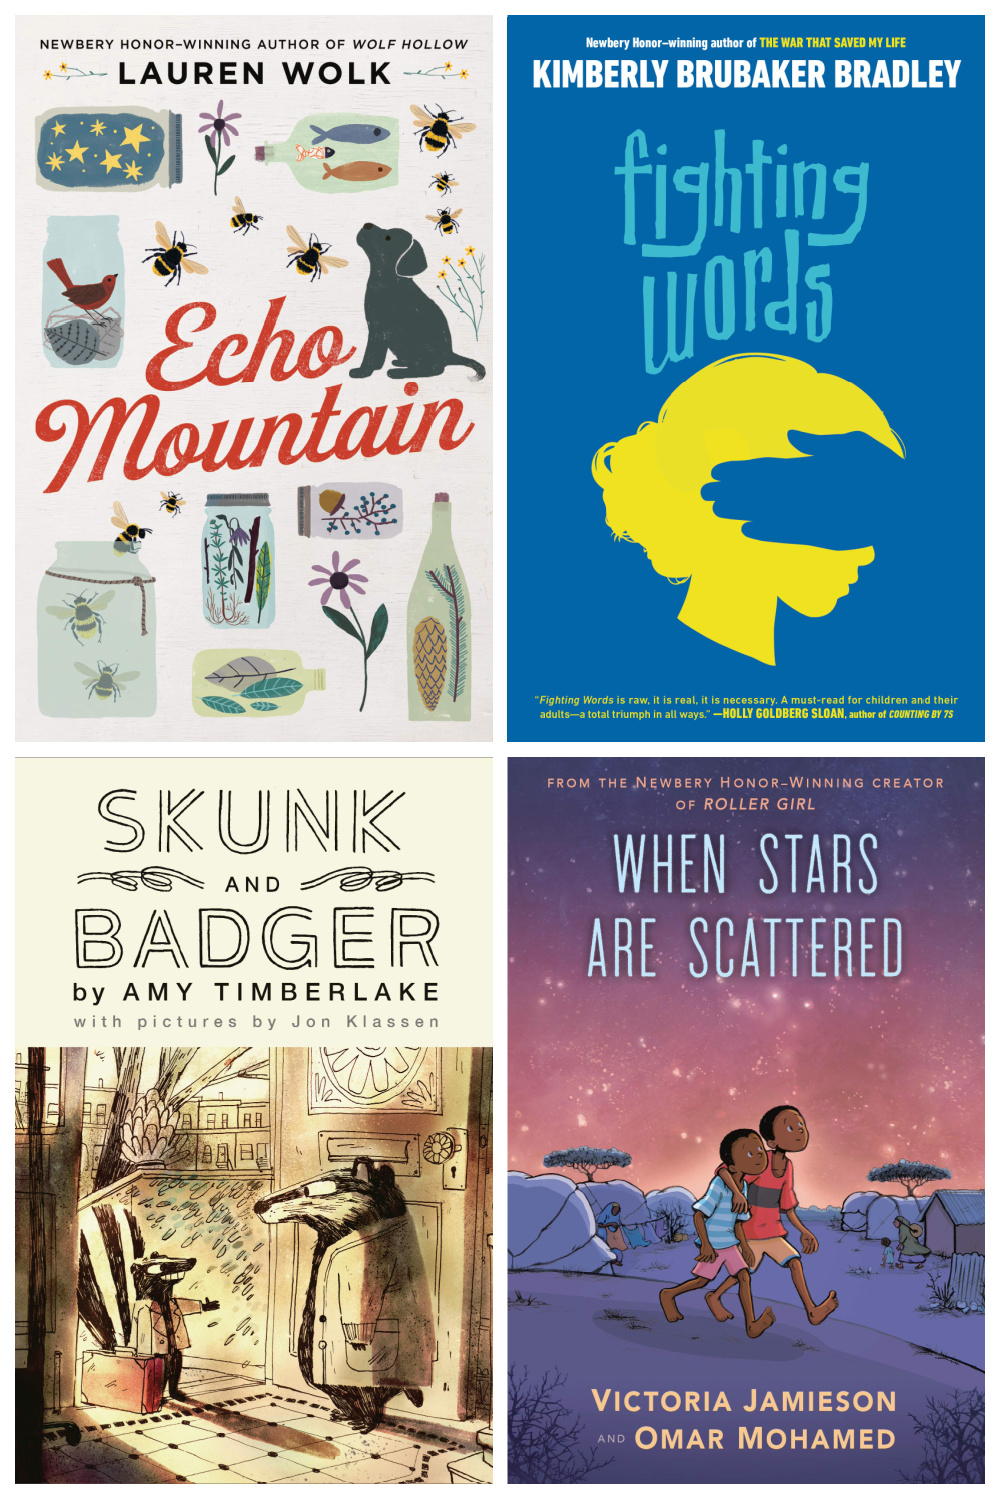 The best children's books of 2020: The Publisher's Weekly picks for best middle grade books.